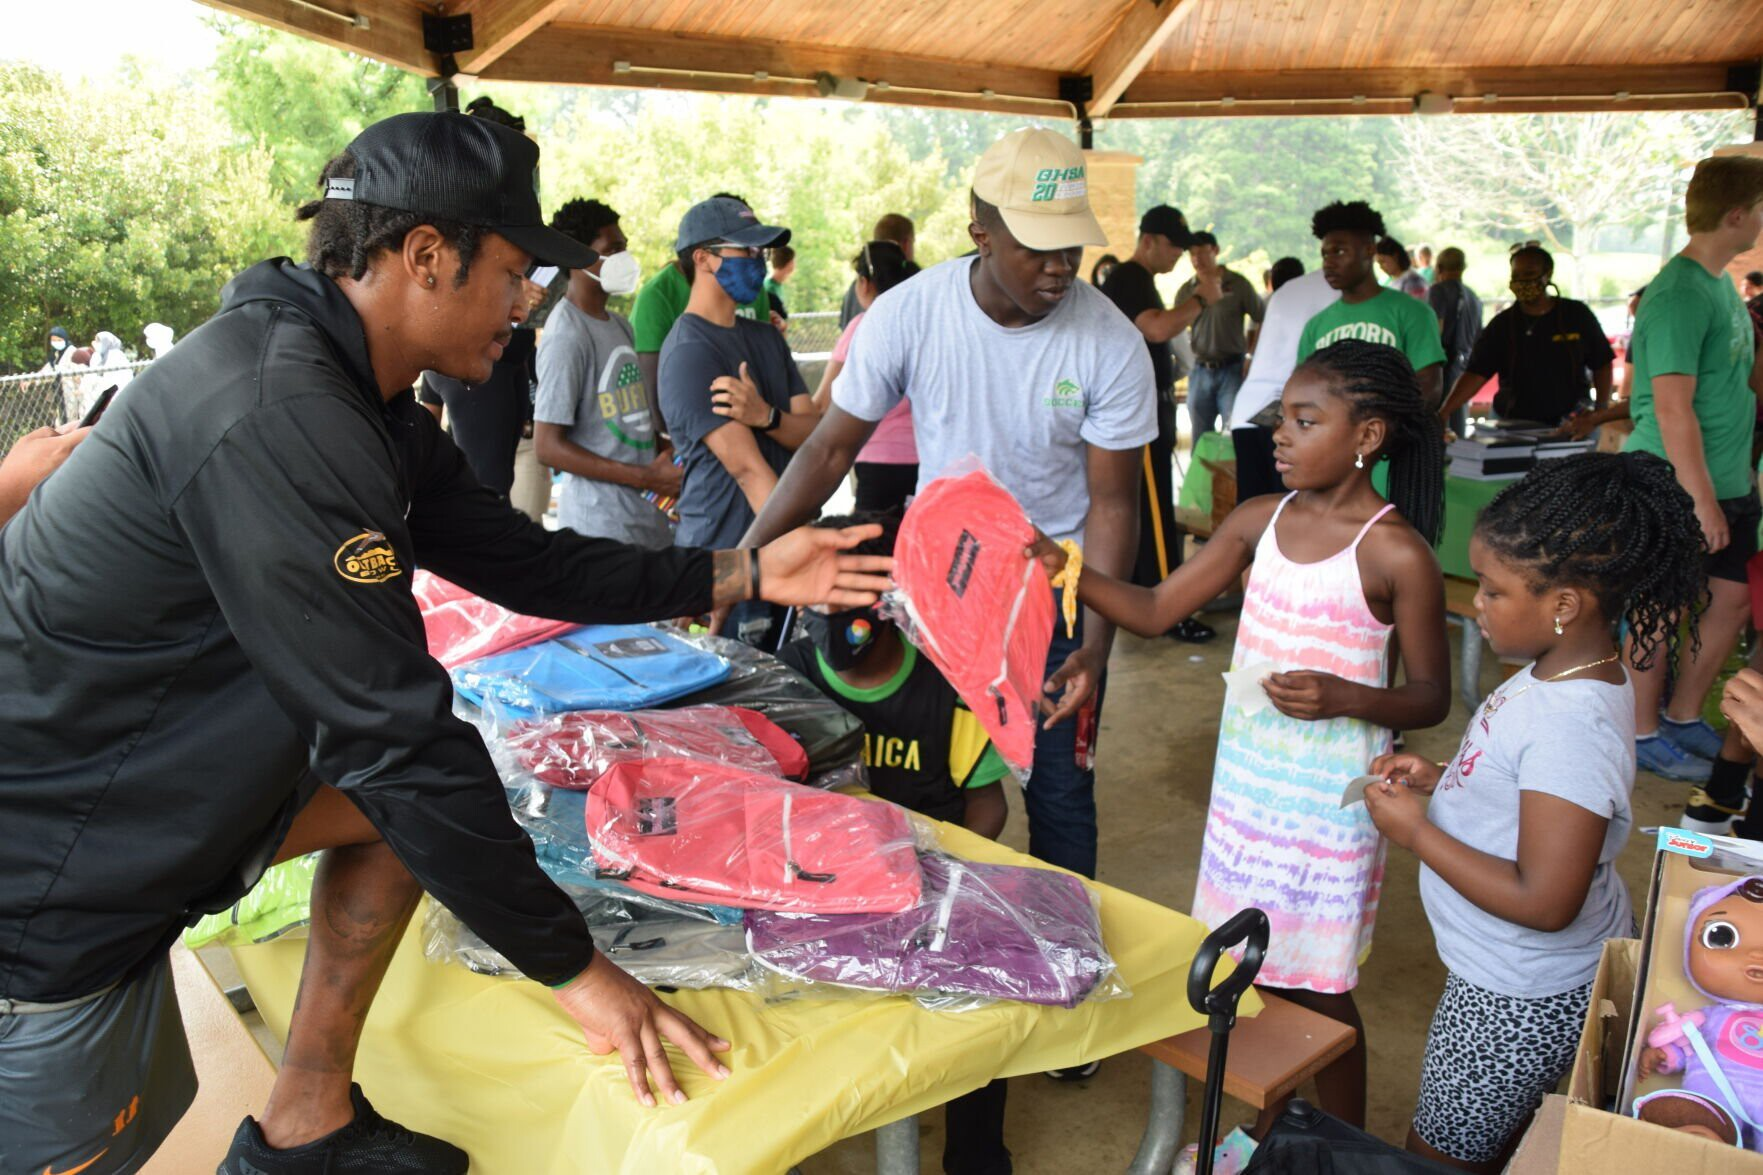 <i>Curt Yeomans/Gwinnett Daily Post</i><br/>Volunteers hand a backpack to a child at the Gwinnett County Sheriff's Office back to school celebration.